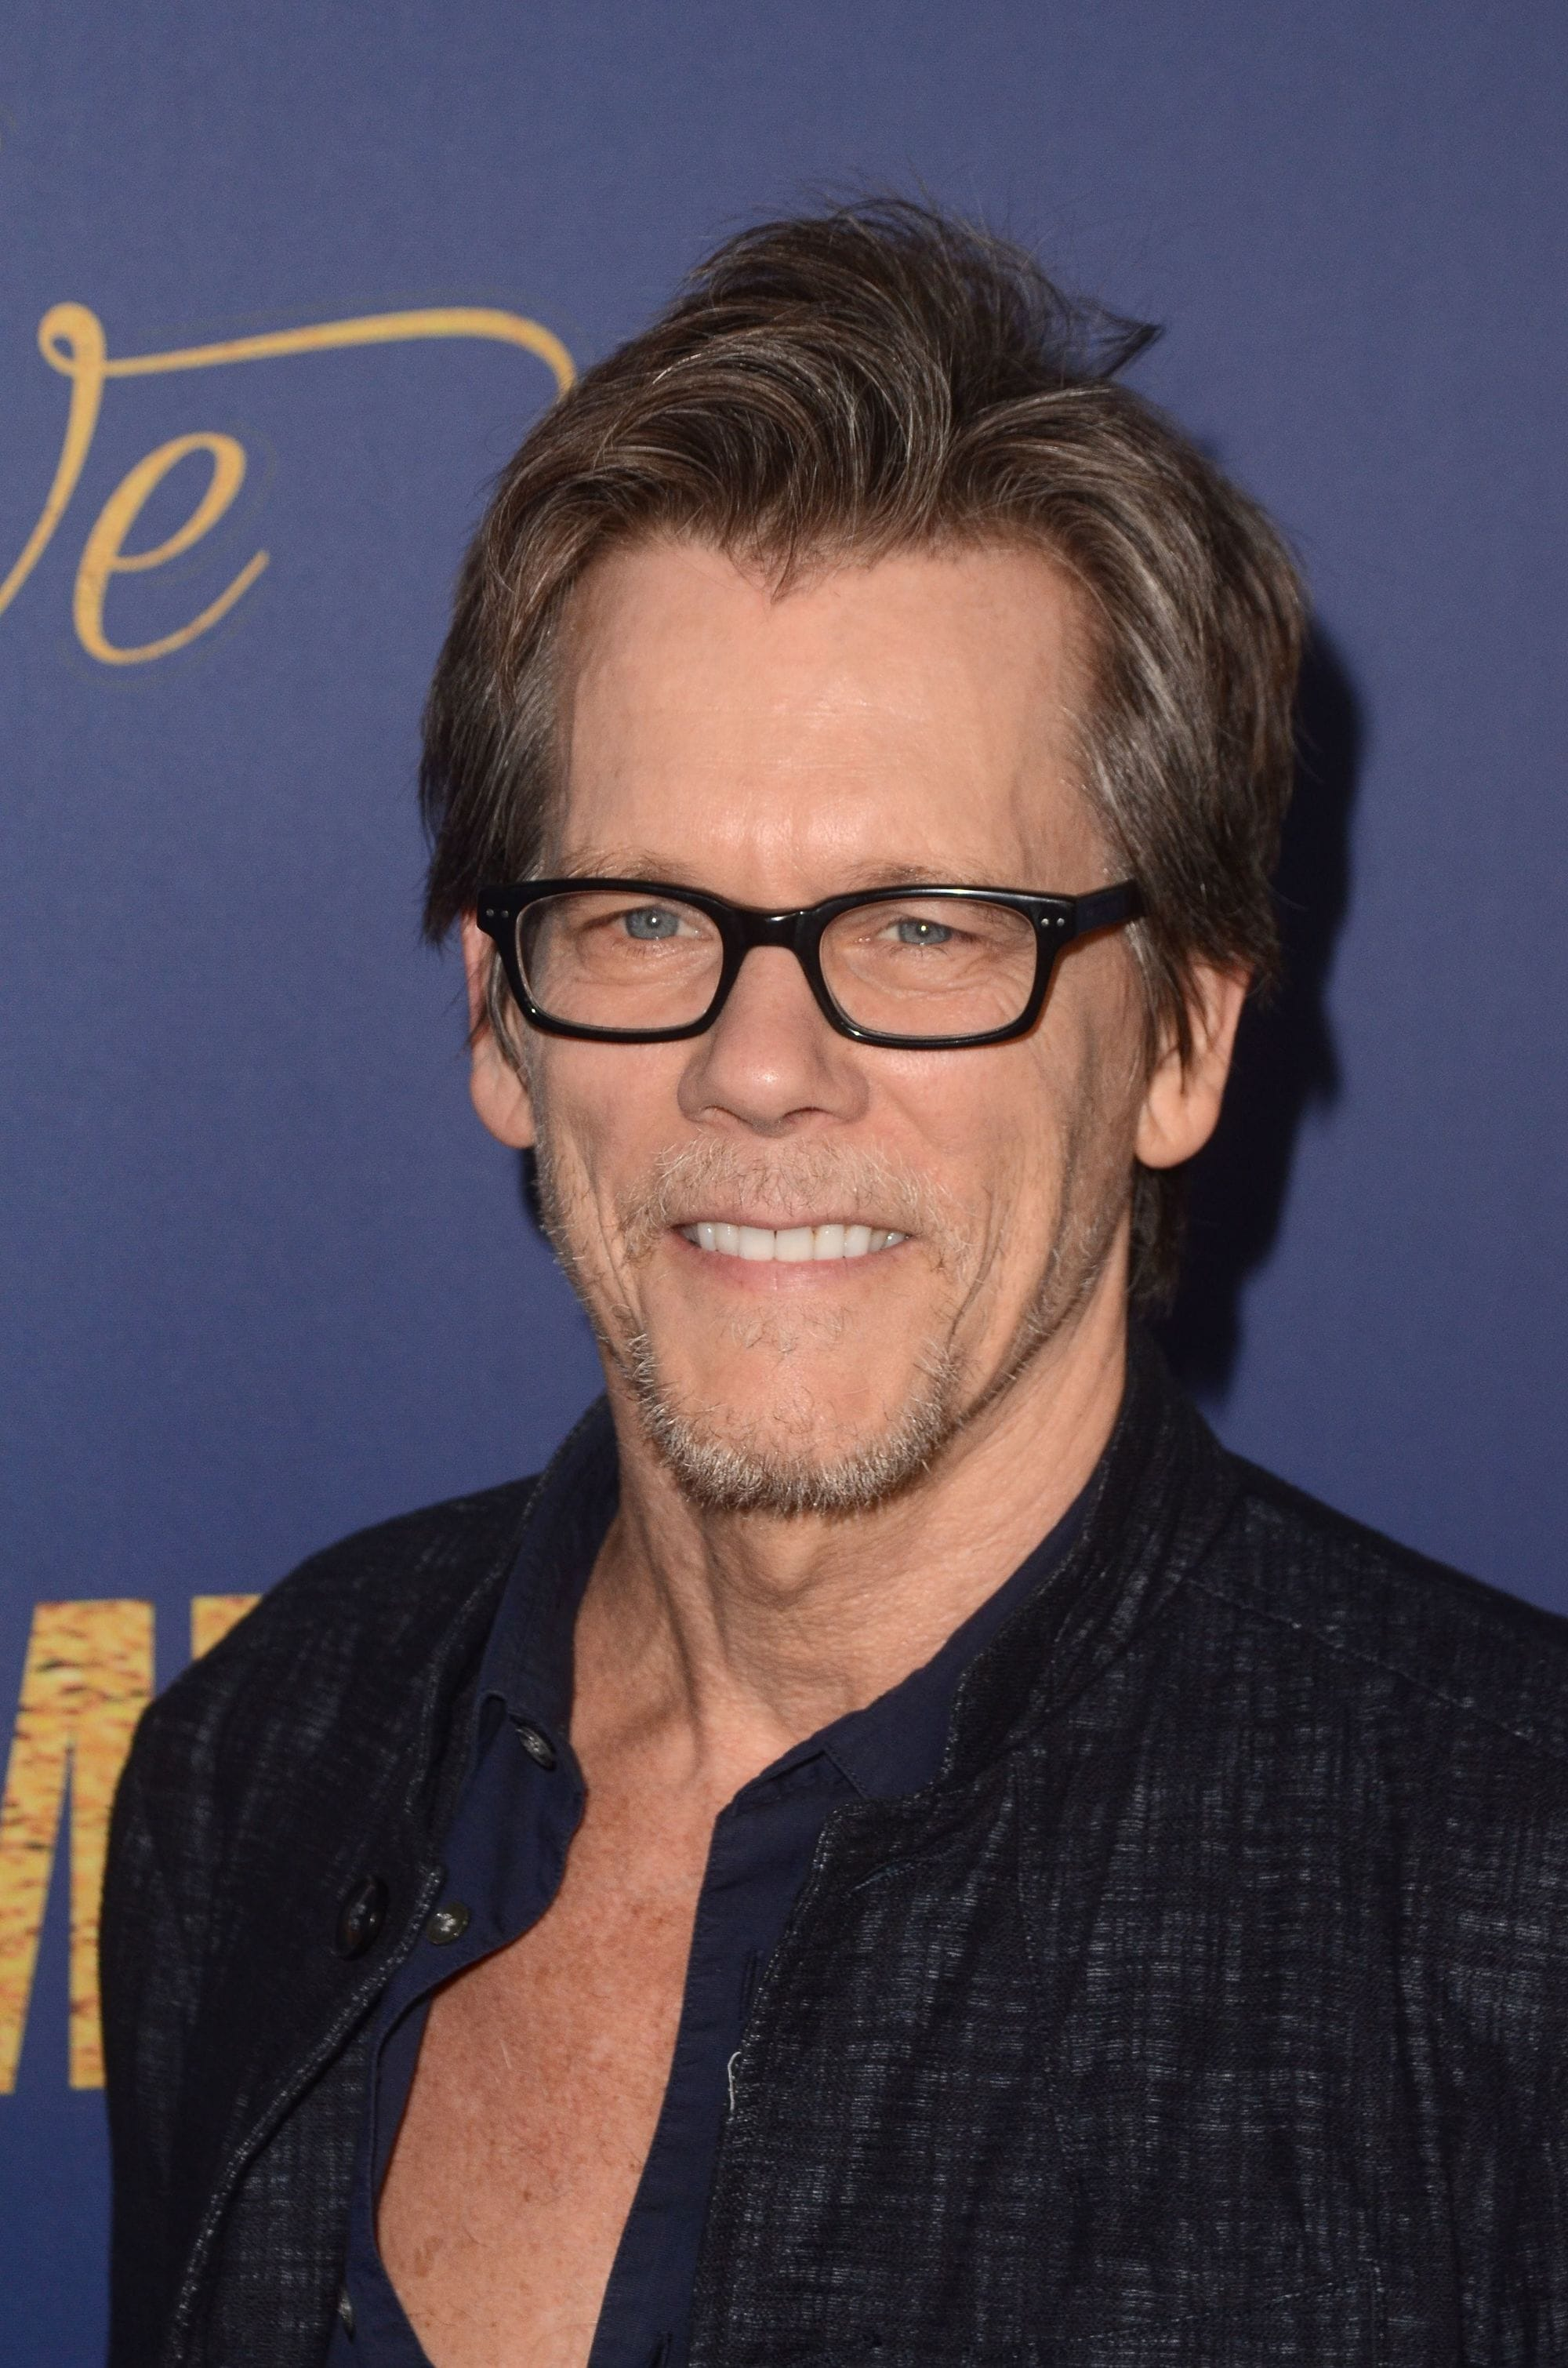 Hairstyles for men over 50: Kevin Bacon with brown straight flow hair wearing black rimmed glasses.